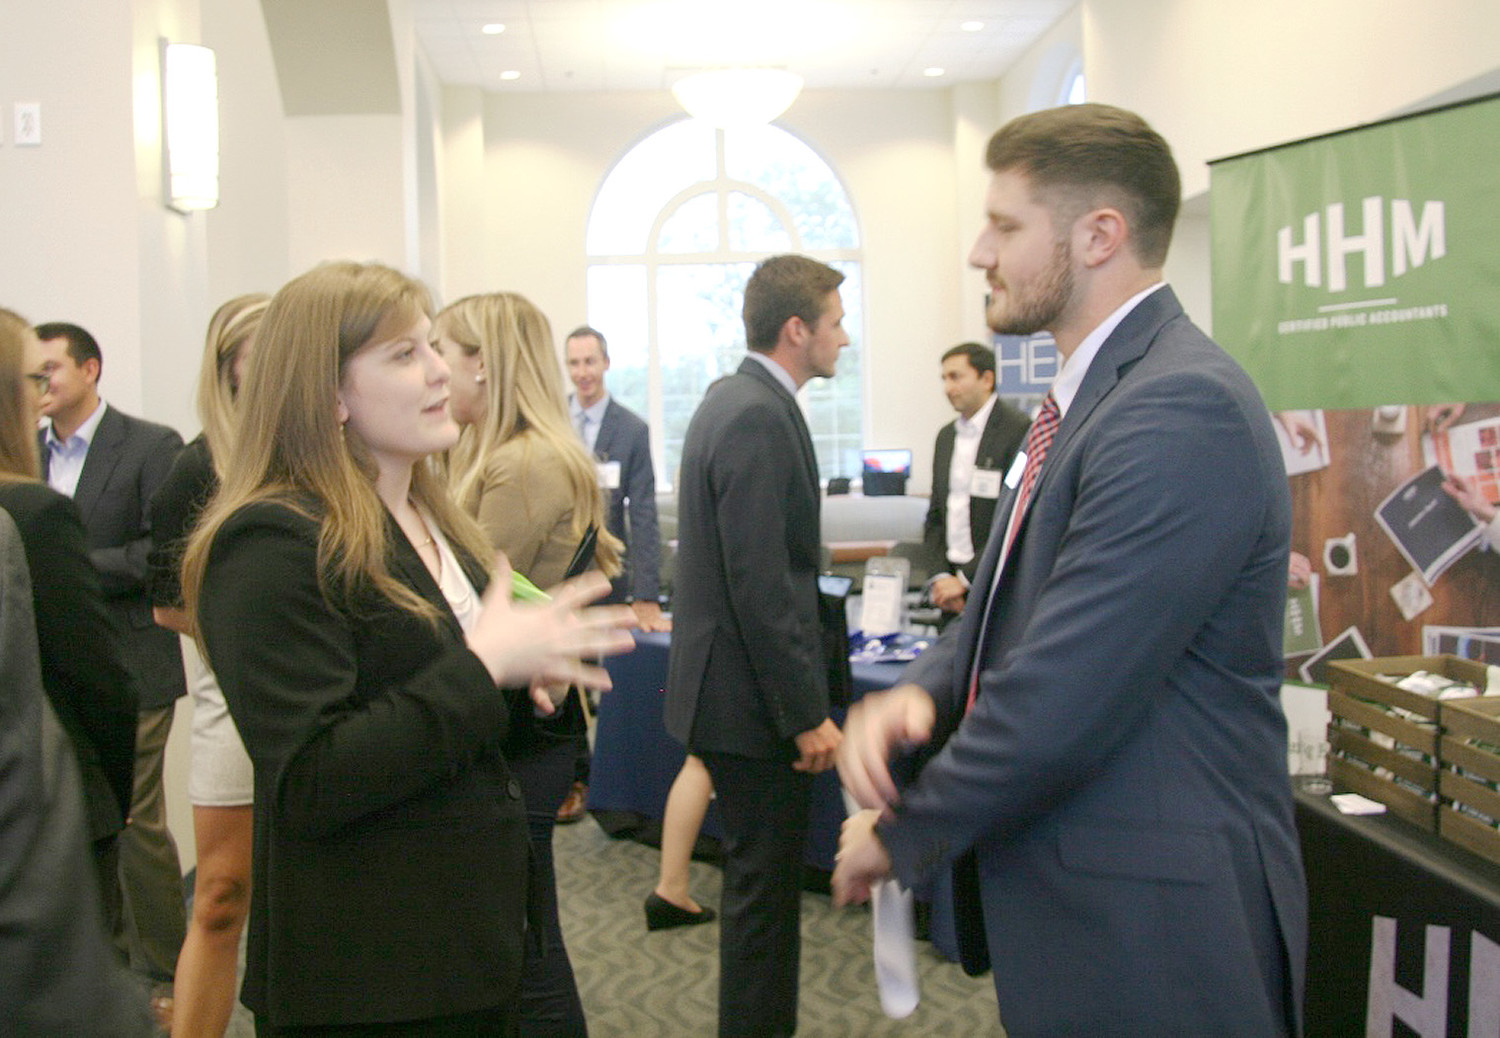 Lee student Emily Holden, left, speaks with Lee alumnus Kyle Briner from the firm Henderson, Hutcherson & McCullough.